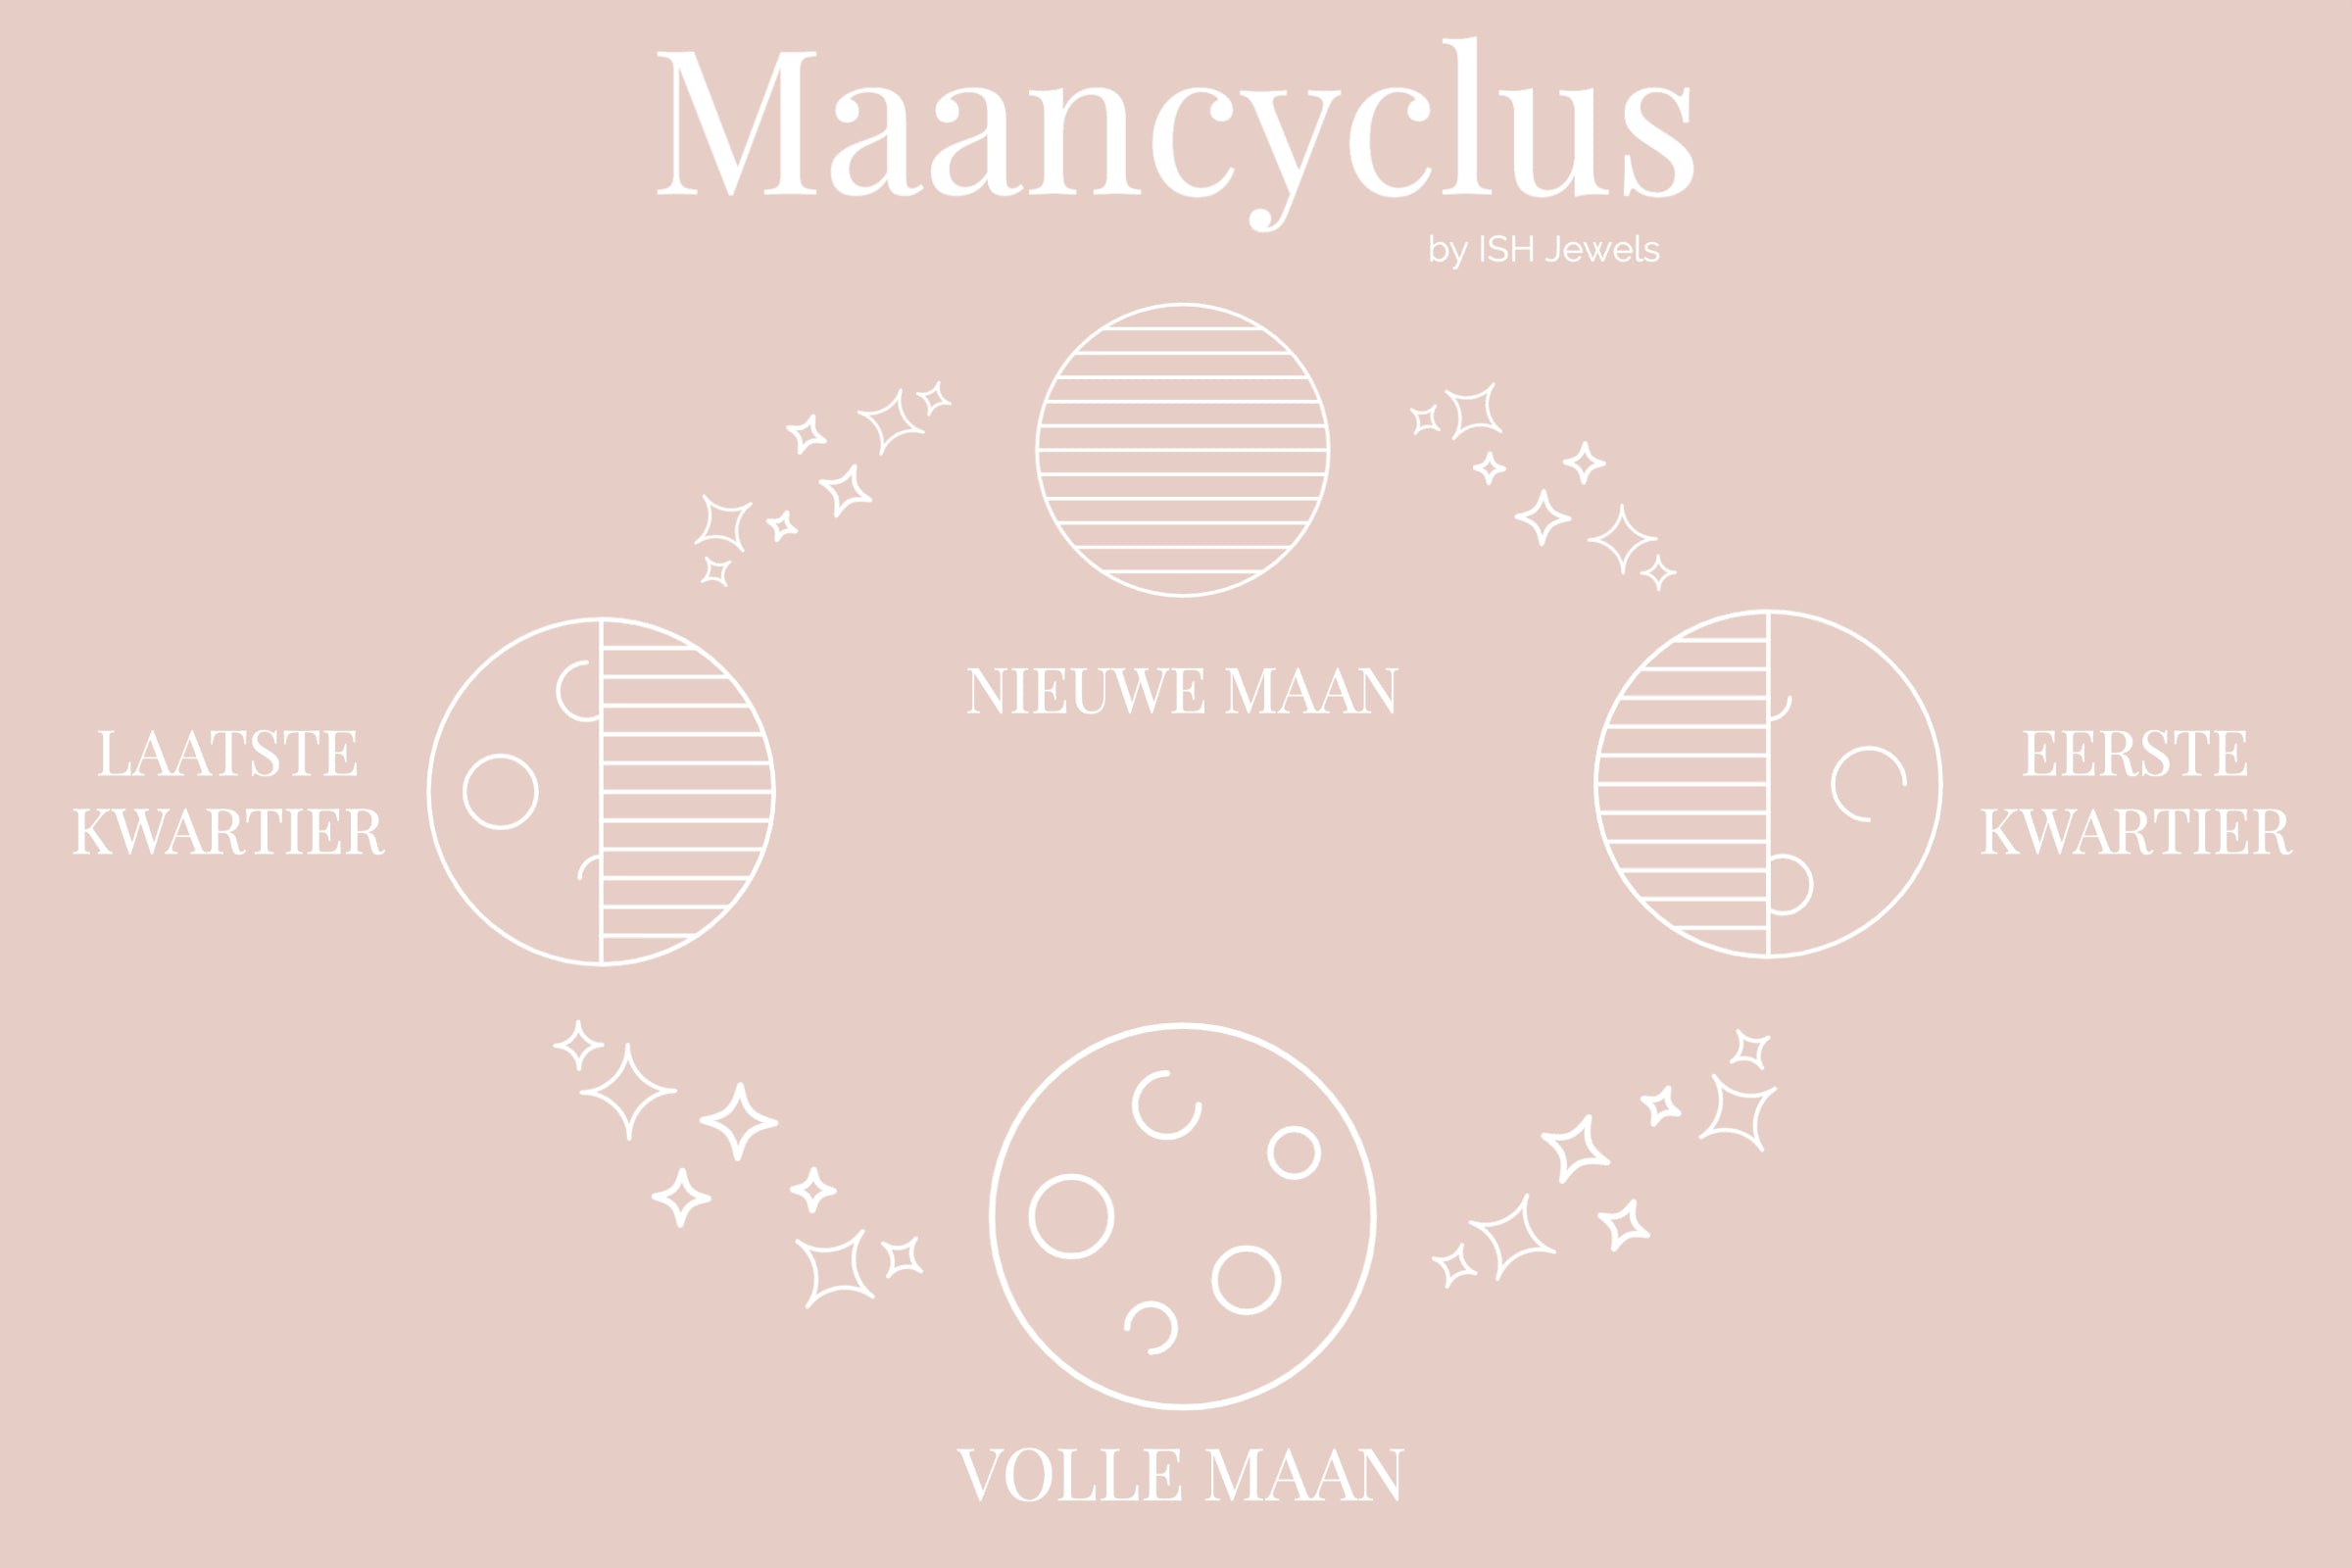 maancyclus-ish jewels